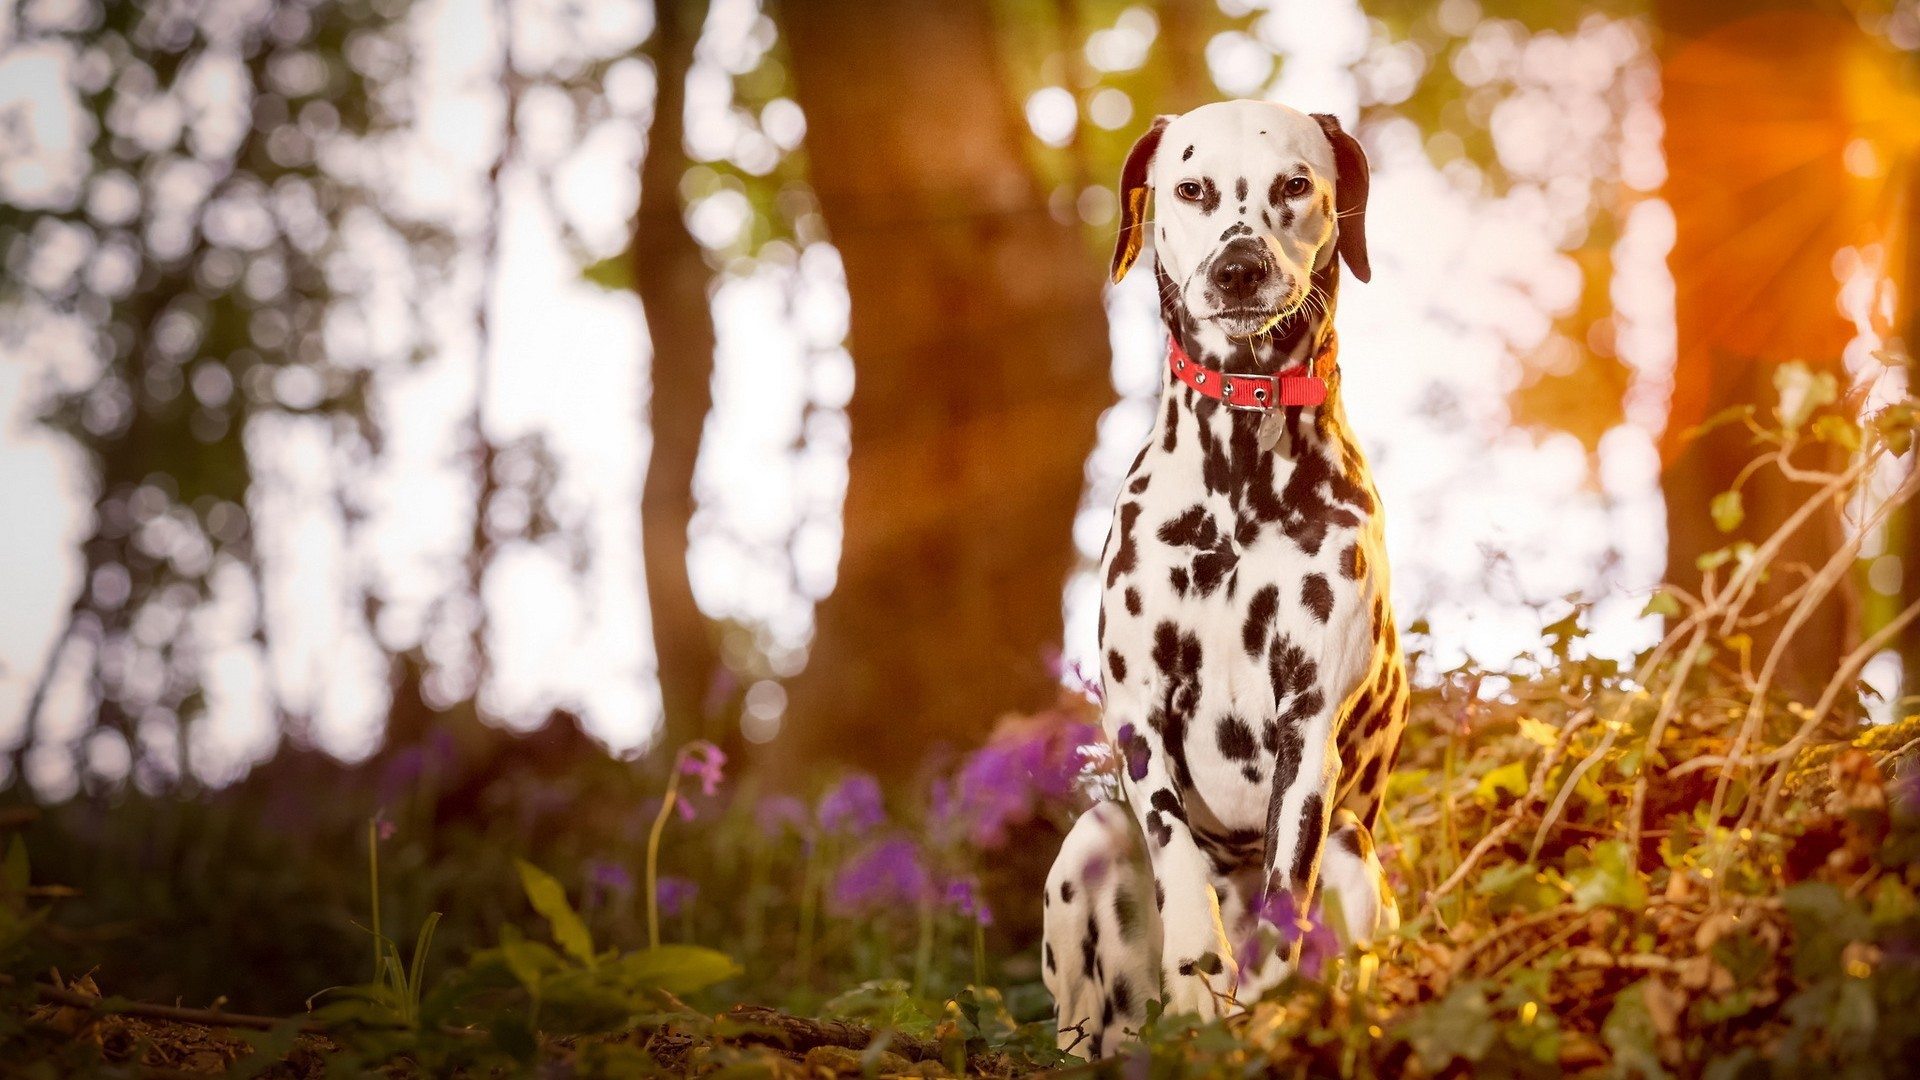 Daffodils Wallpaper Hd Dalmatian Dog Wallpapers Archives Hdwallsource Com